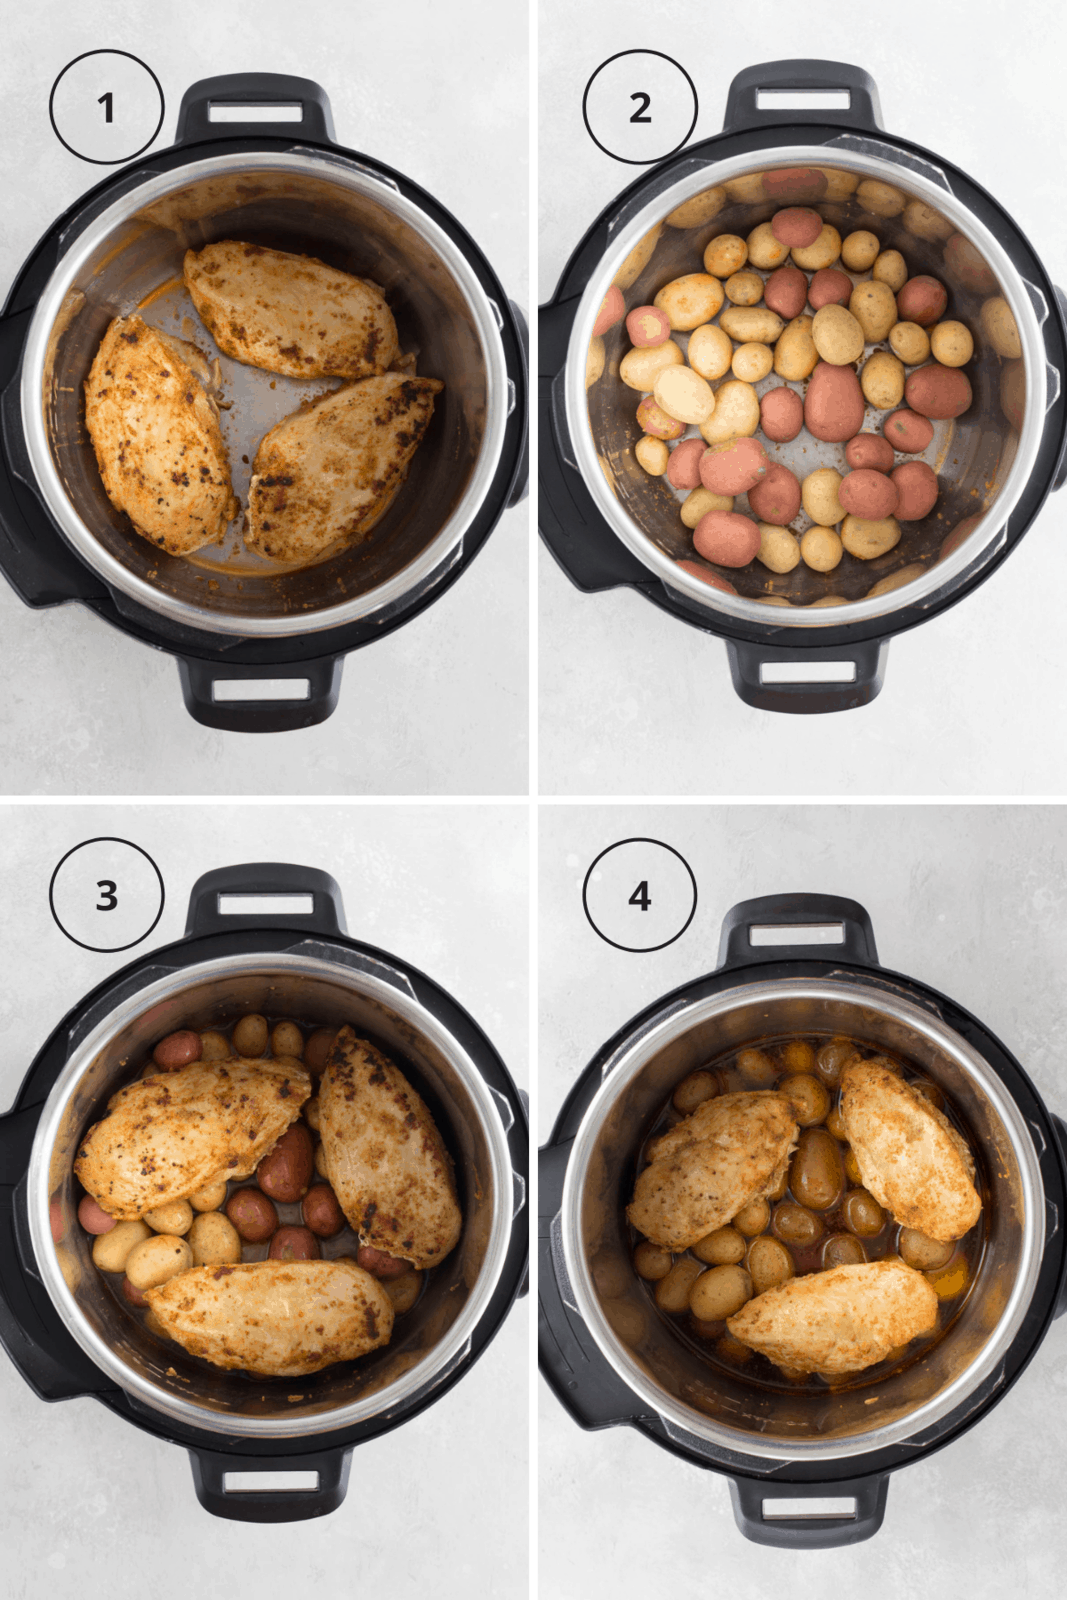 step by step instructions for how to make instant pot chicken and potatoes.